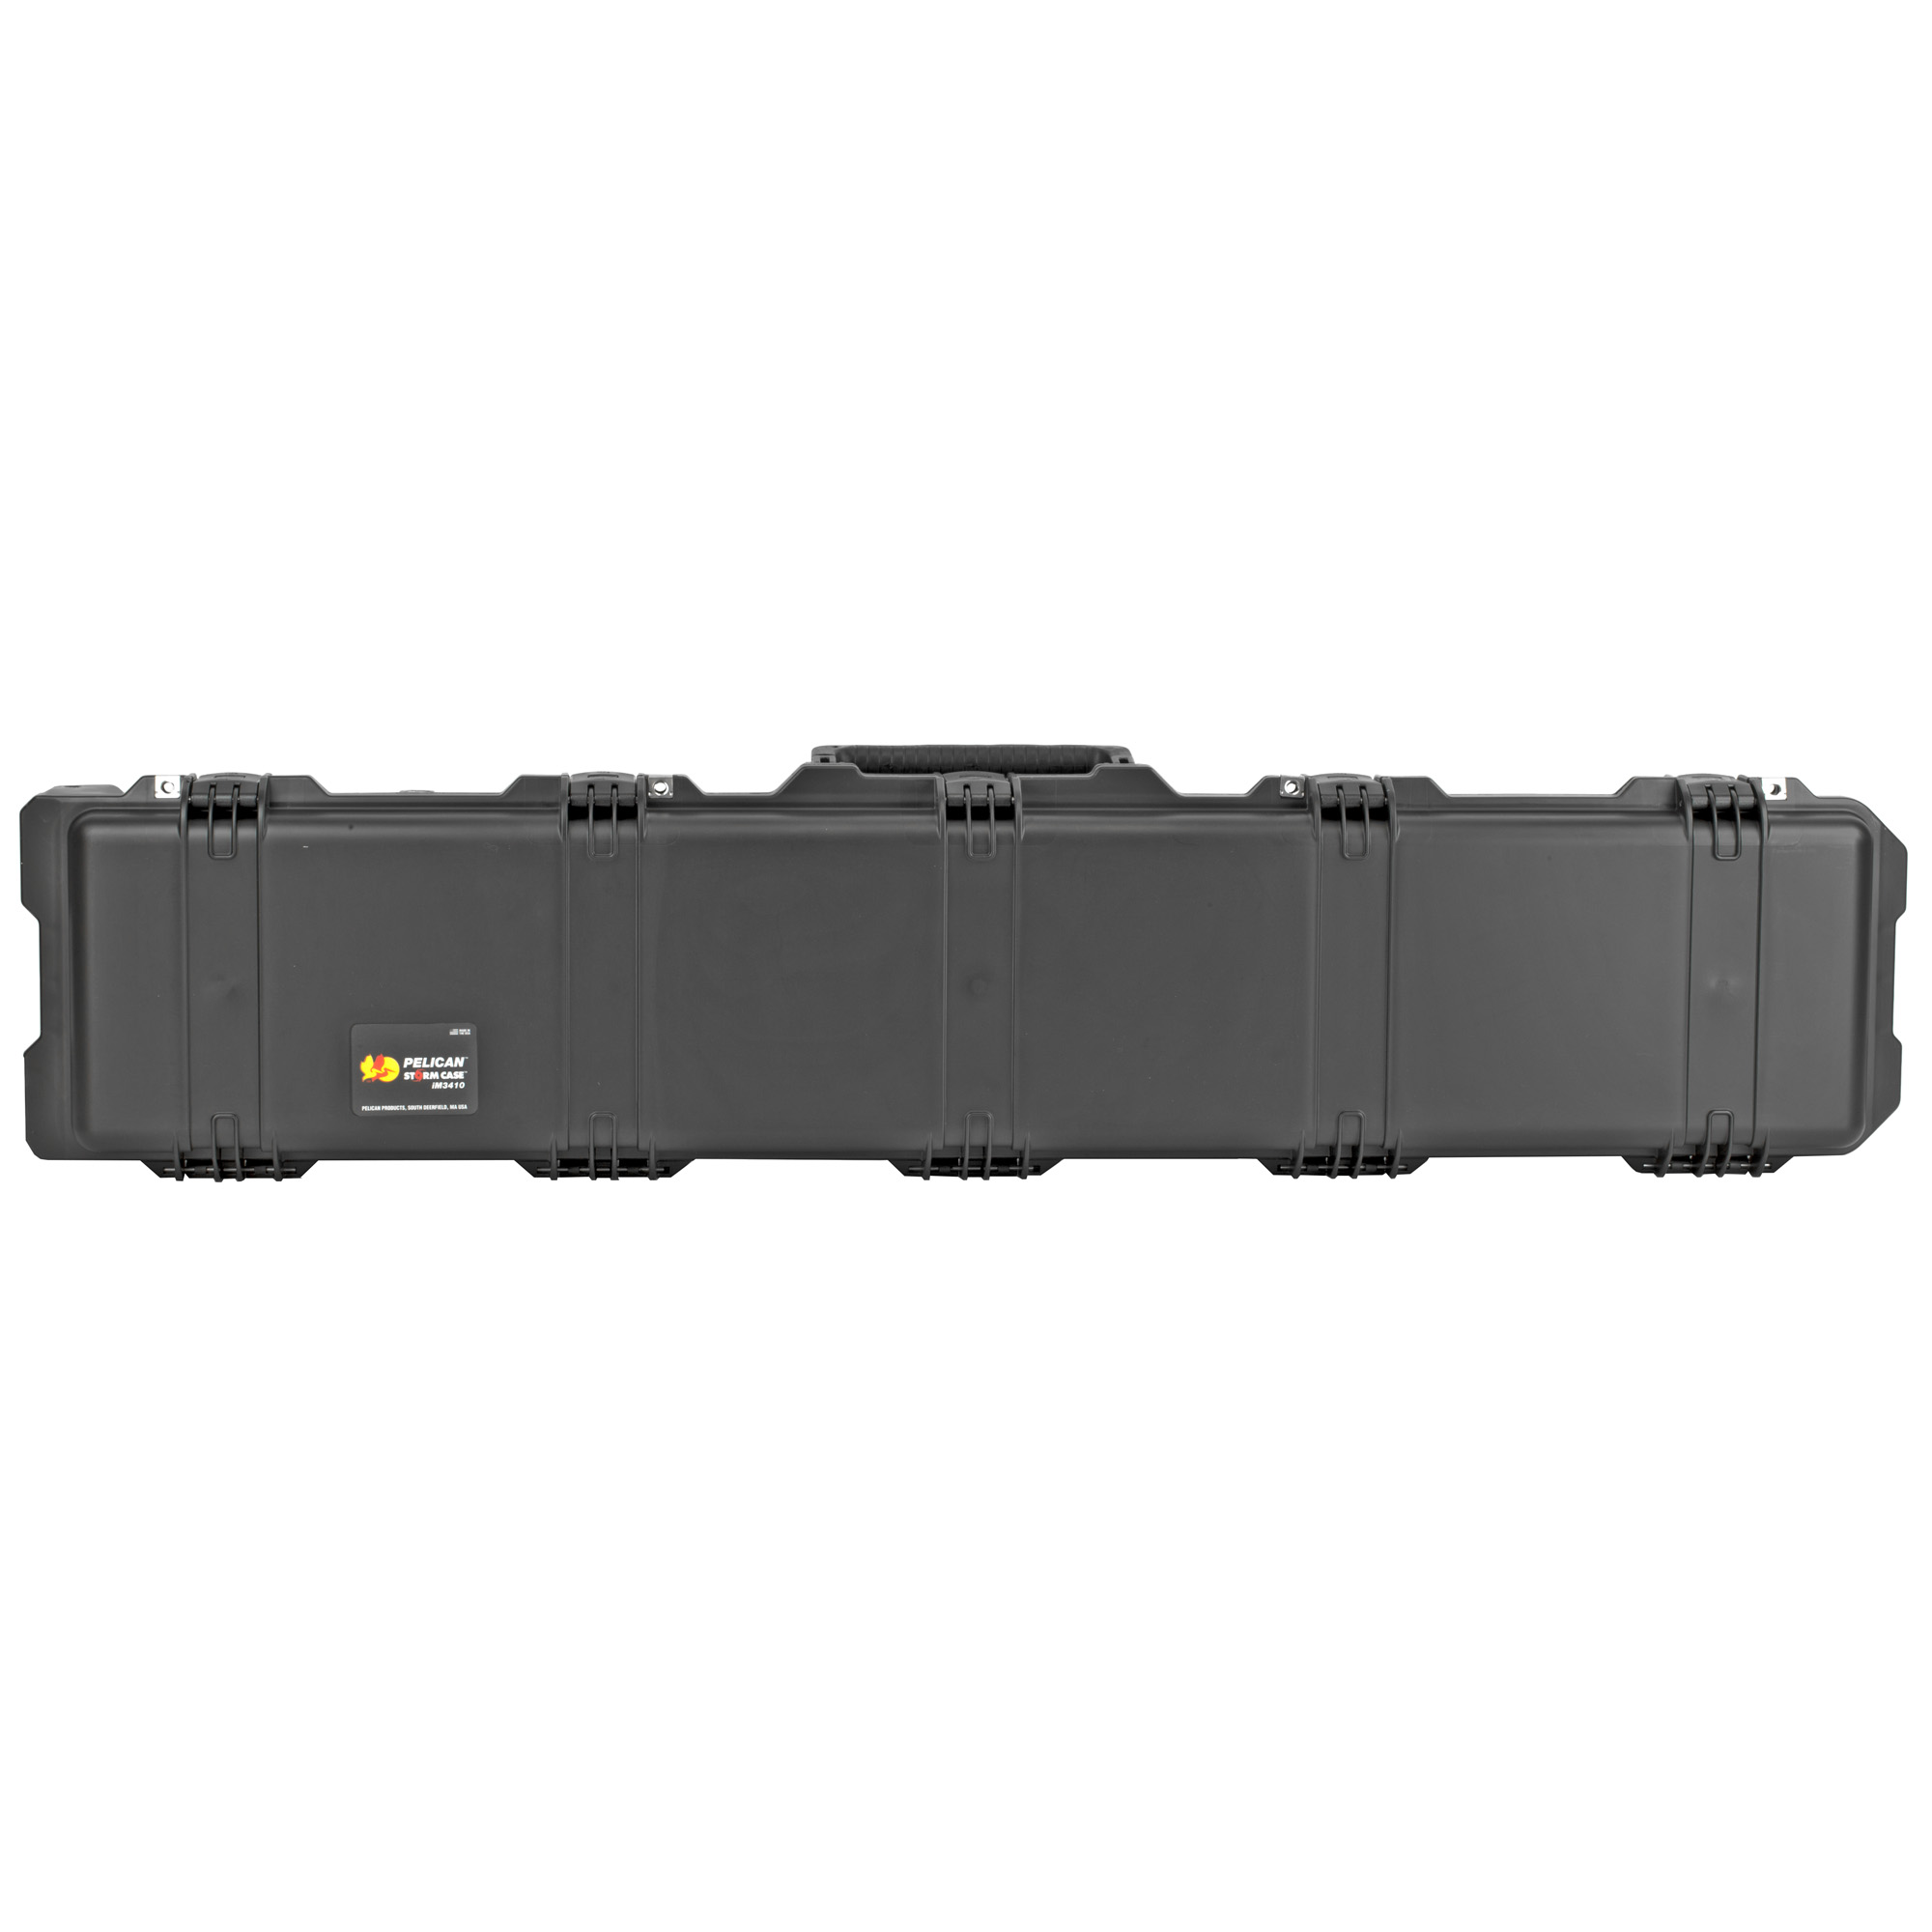 """The Storm Case(TM) has the same legendary DNA as the Pelican Protector Case"""" with one primary difference: A unique Press and Pull latch that locks automatically"""" but opens with a light touch. Guaranteed for life"""" the Pelican Storm case is made in the USA and engineered using the finest components."""